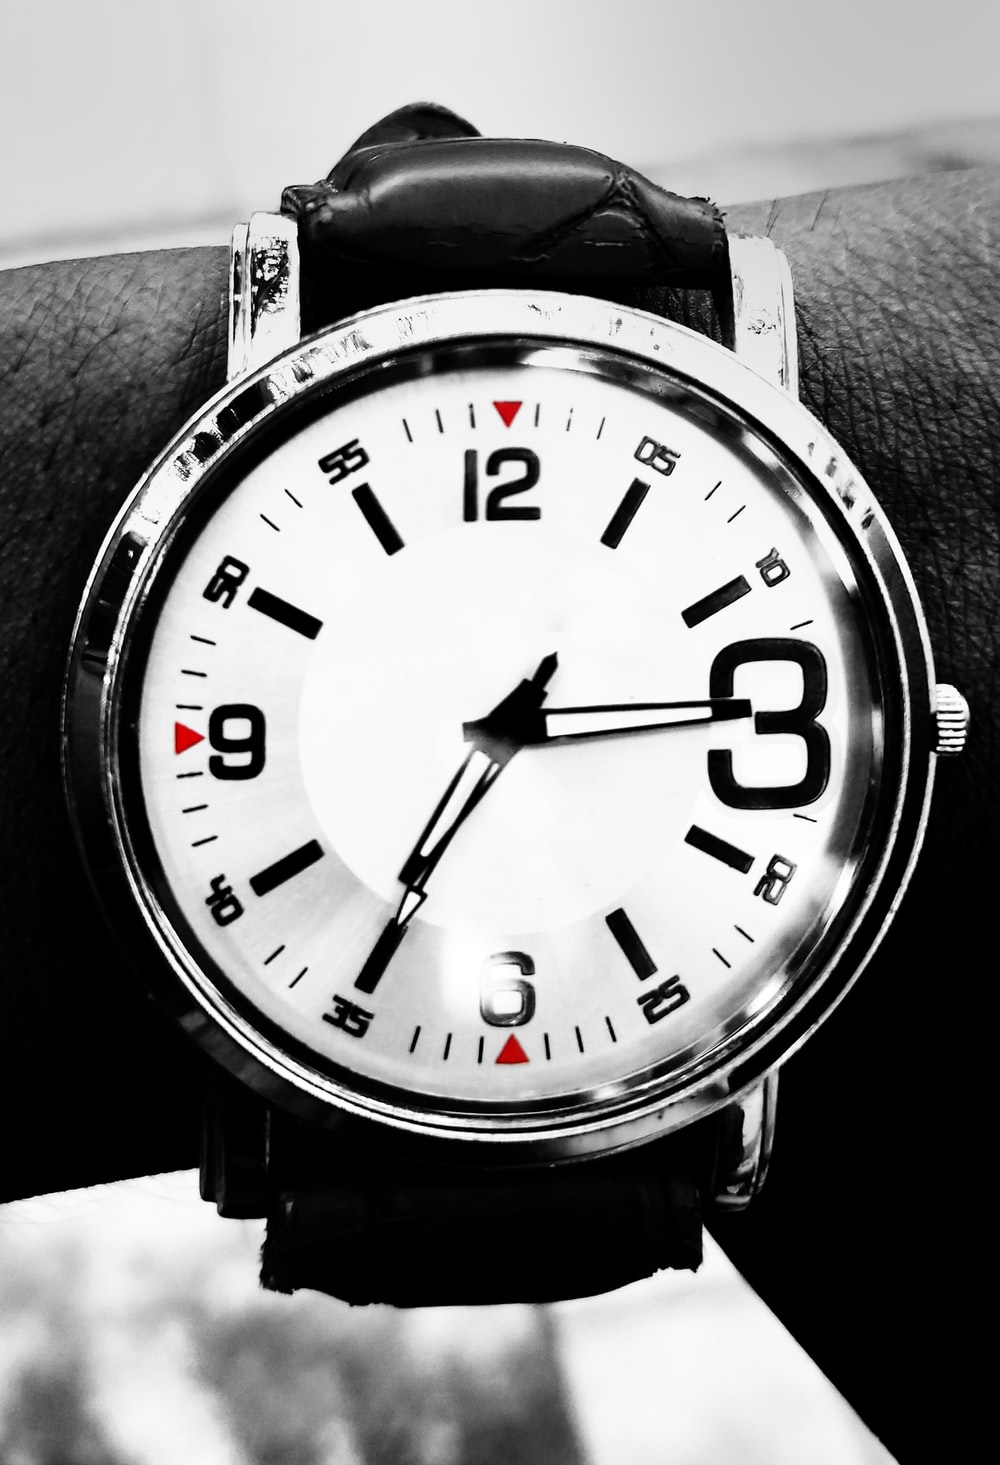 black and white analog watch with black straps